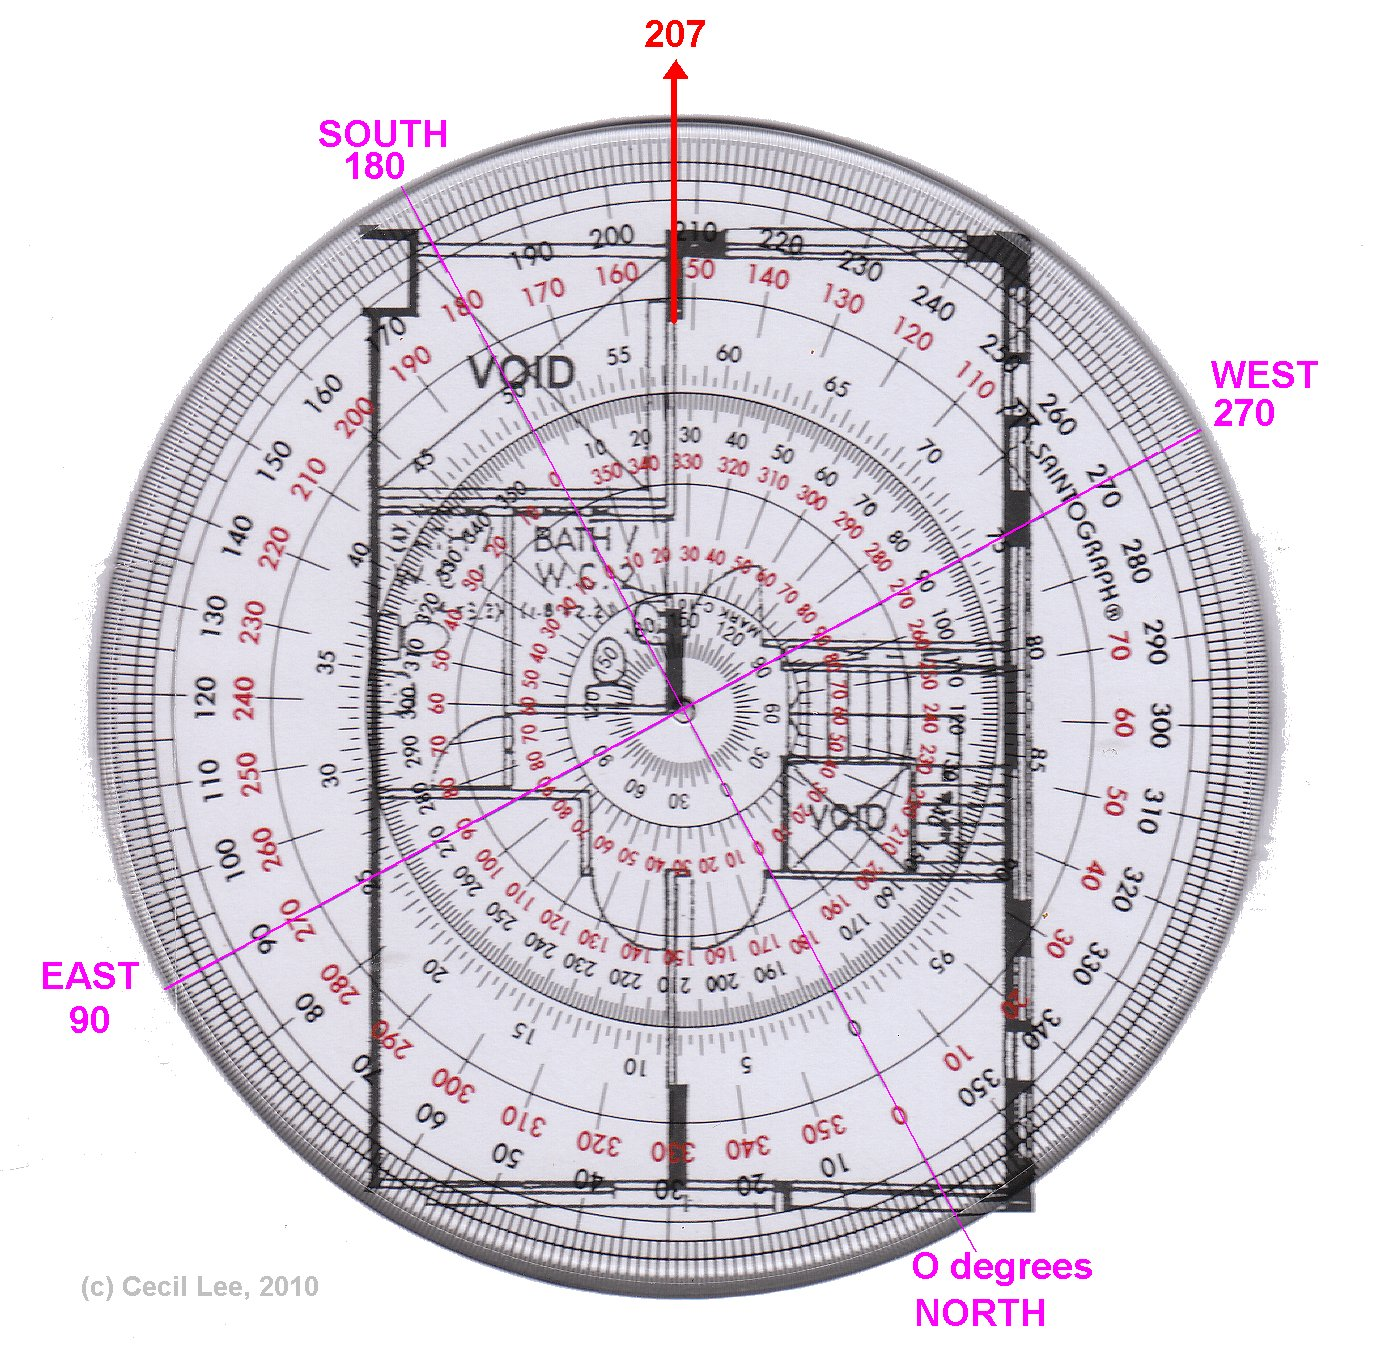 house facing between south and south west 200deg general help the pie chart and house floor plan to magnetic north or should i align the floor plan to magnetic north but keep the pie chart align with the south